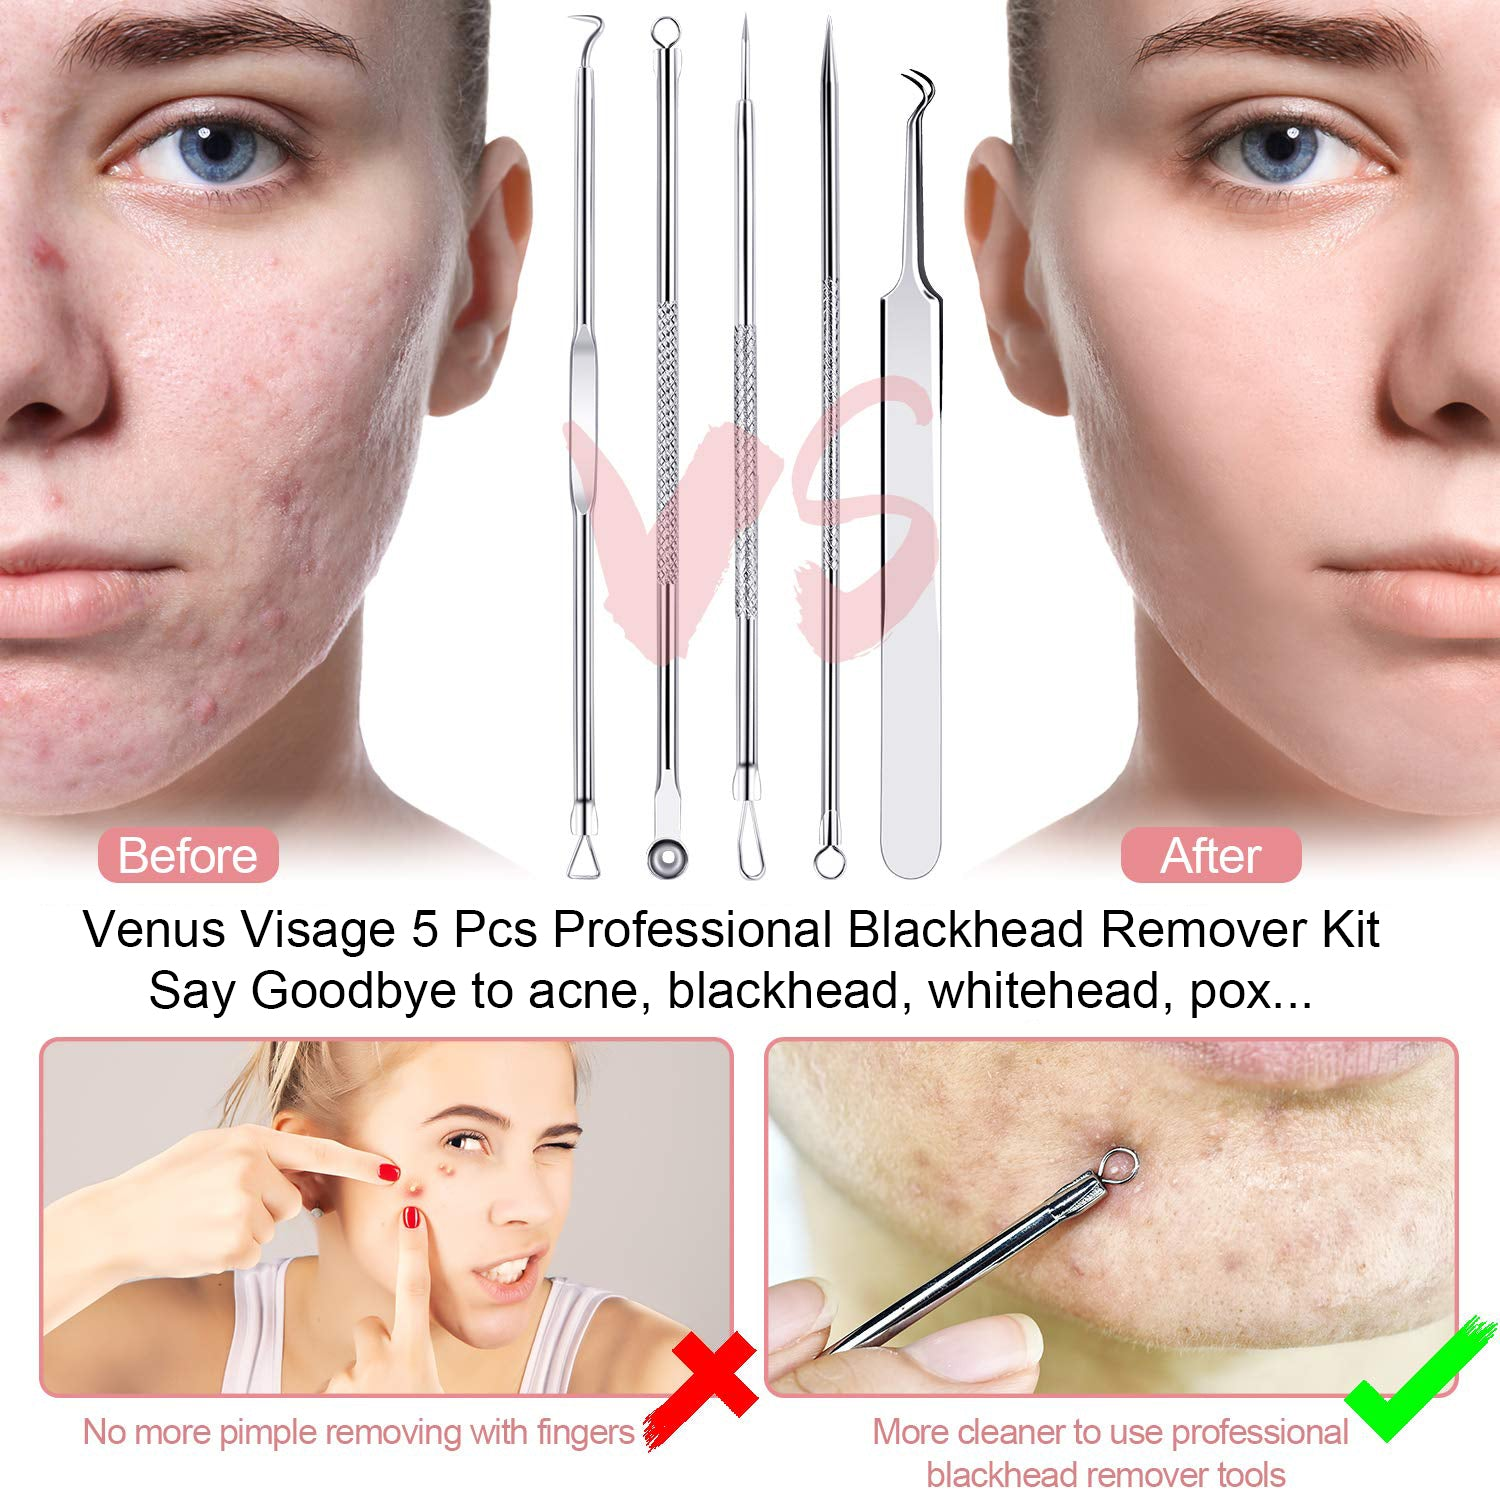 Venus Visage Blackhead Remover Pore Vacuum Electric Blackhead Cleaner USB Rechargeable Acne Comedone Extractor Kit with 5 Adjustable Suction Power and 6 Suction Heads